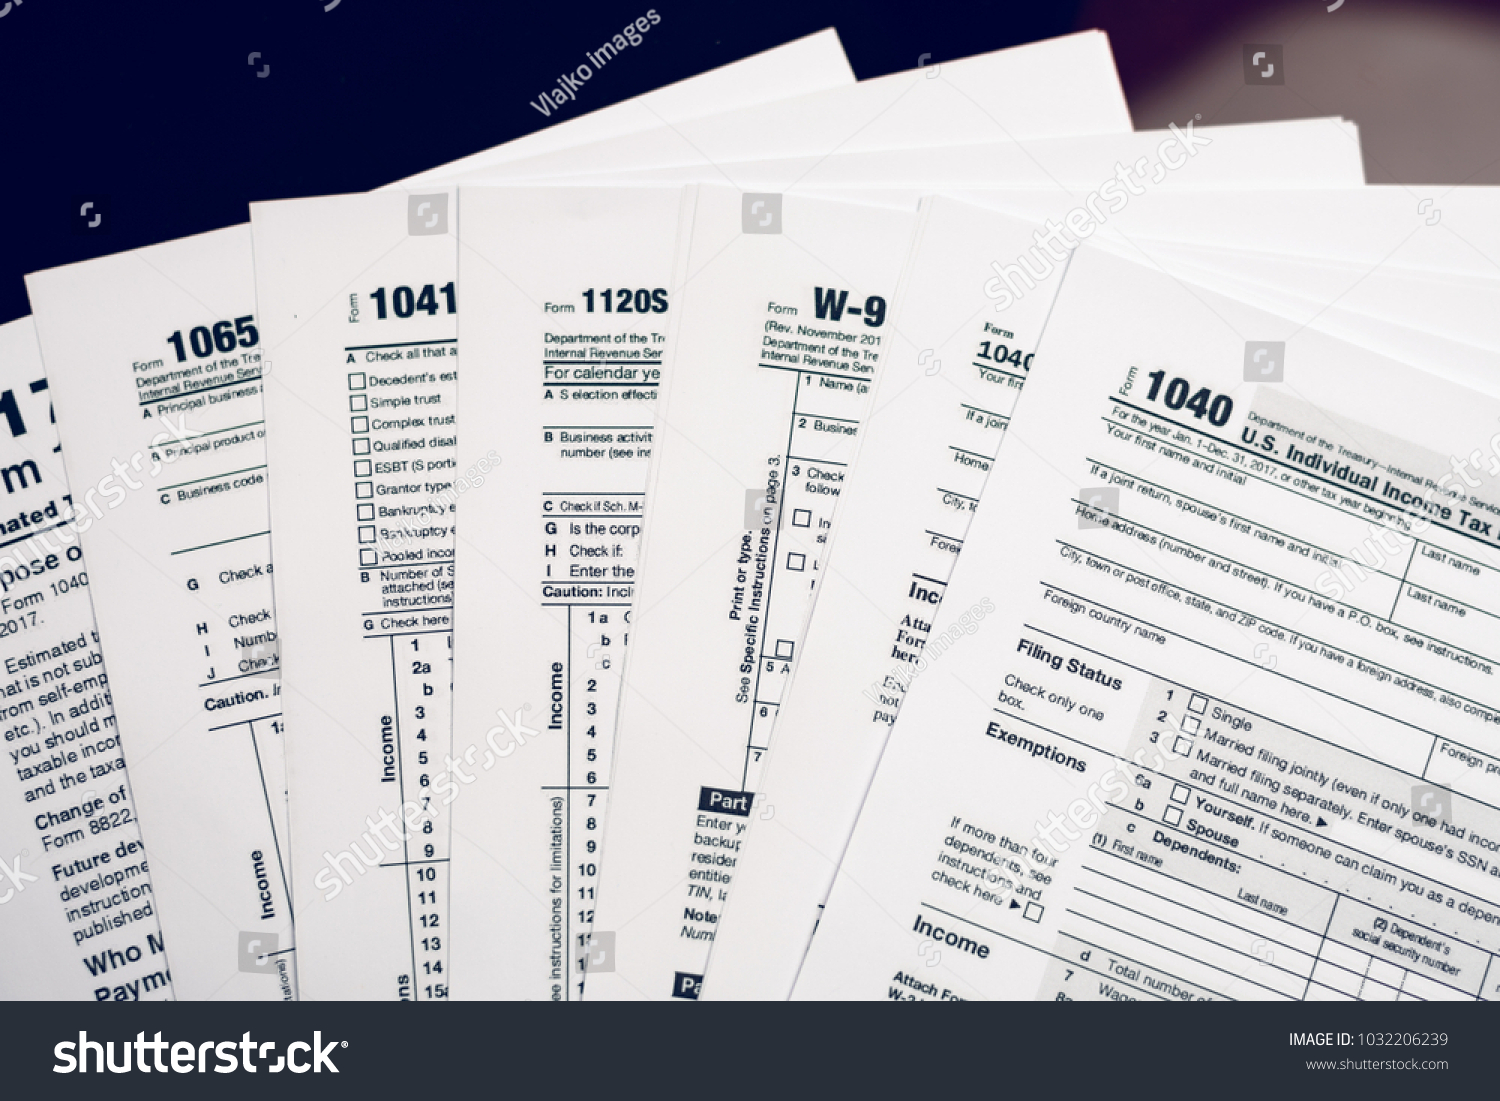 1040 Printable Tax Forms Gallery Free Form Design Examples